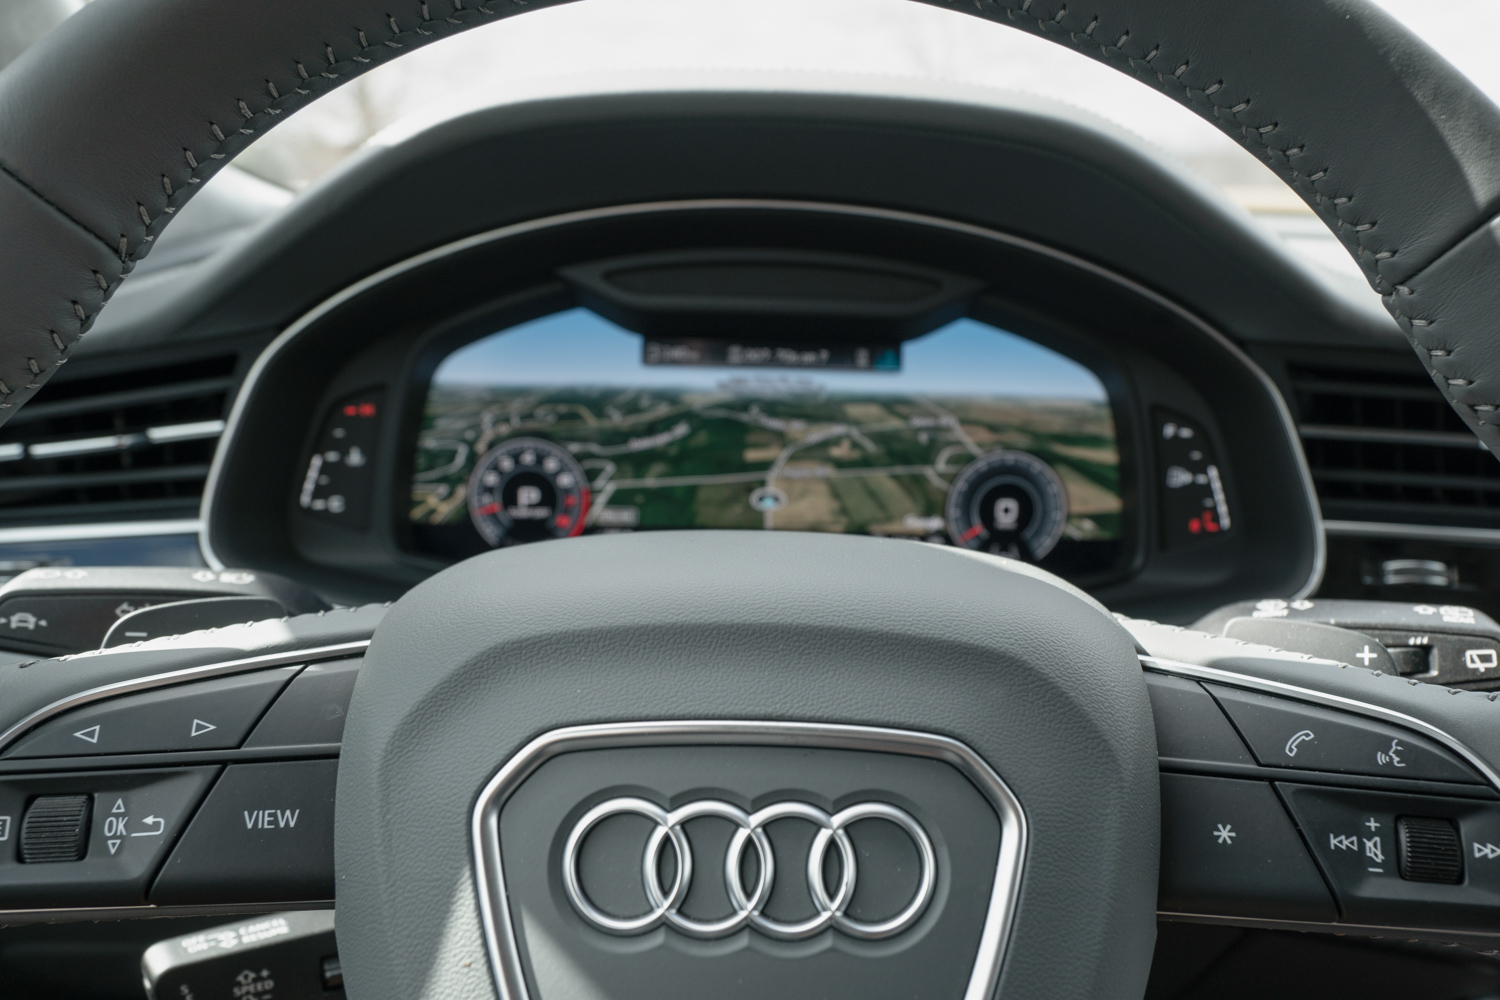 2020 Audi Q8 steering and gauges